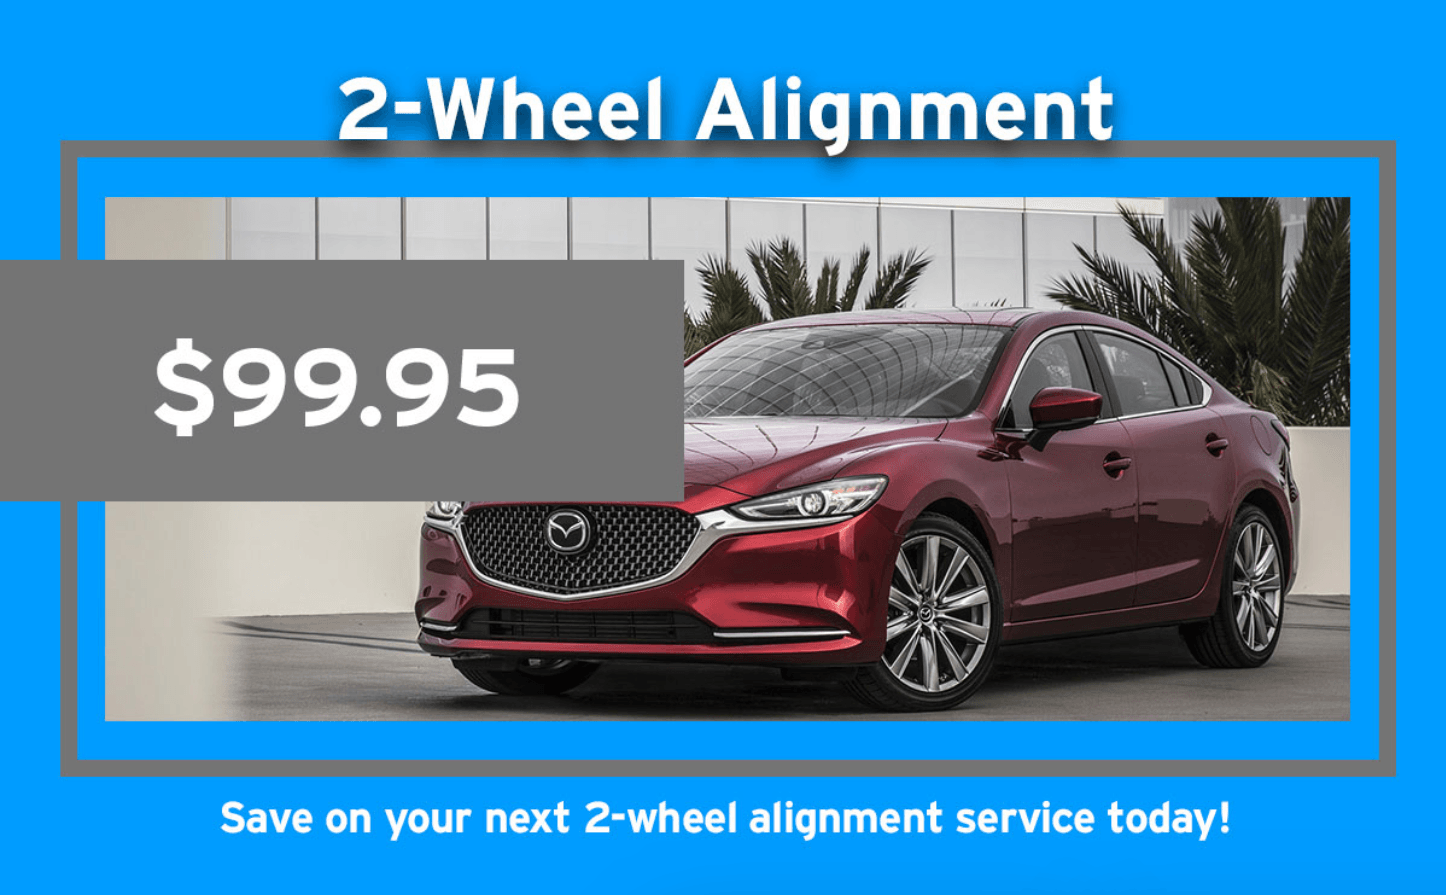 2-WHEEL ALIGNMENT